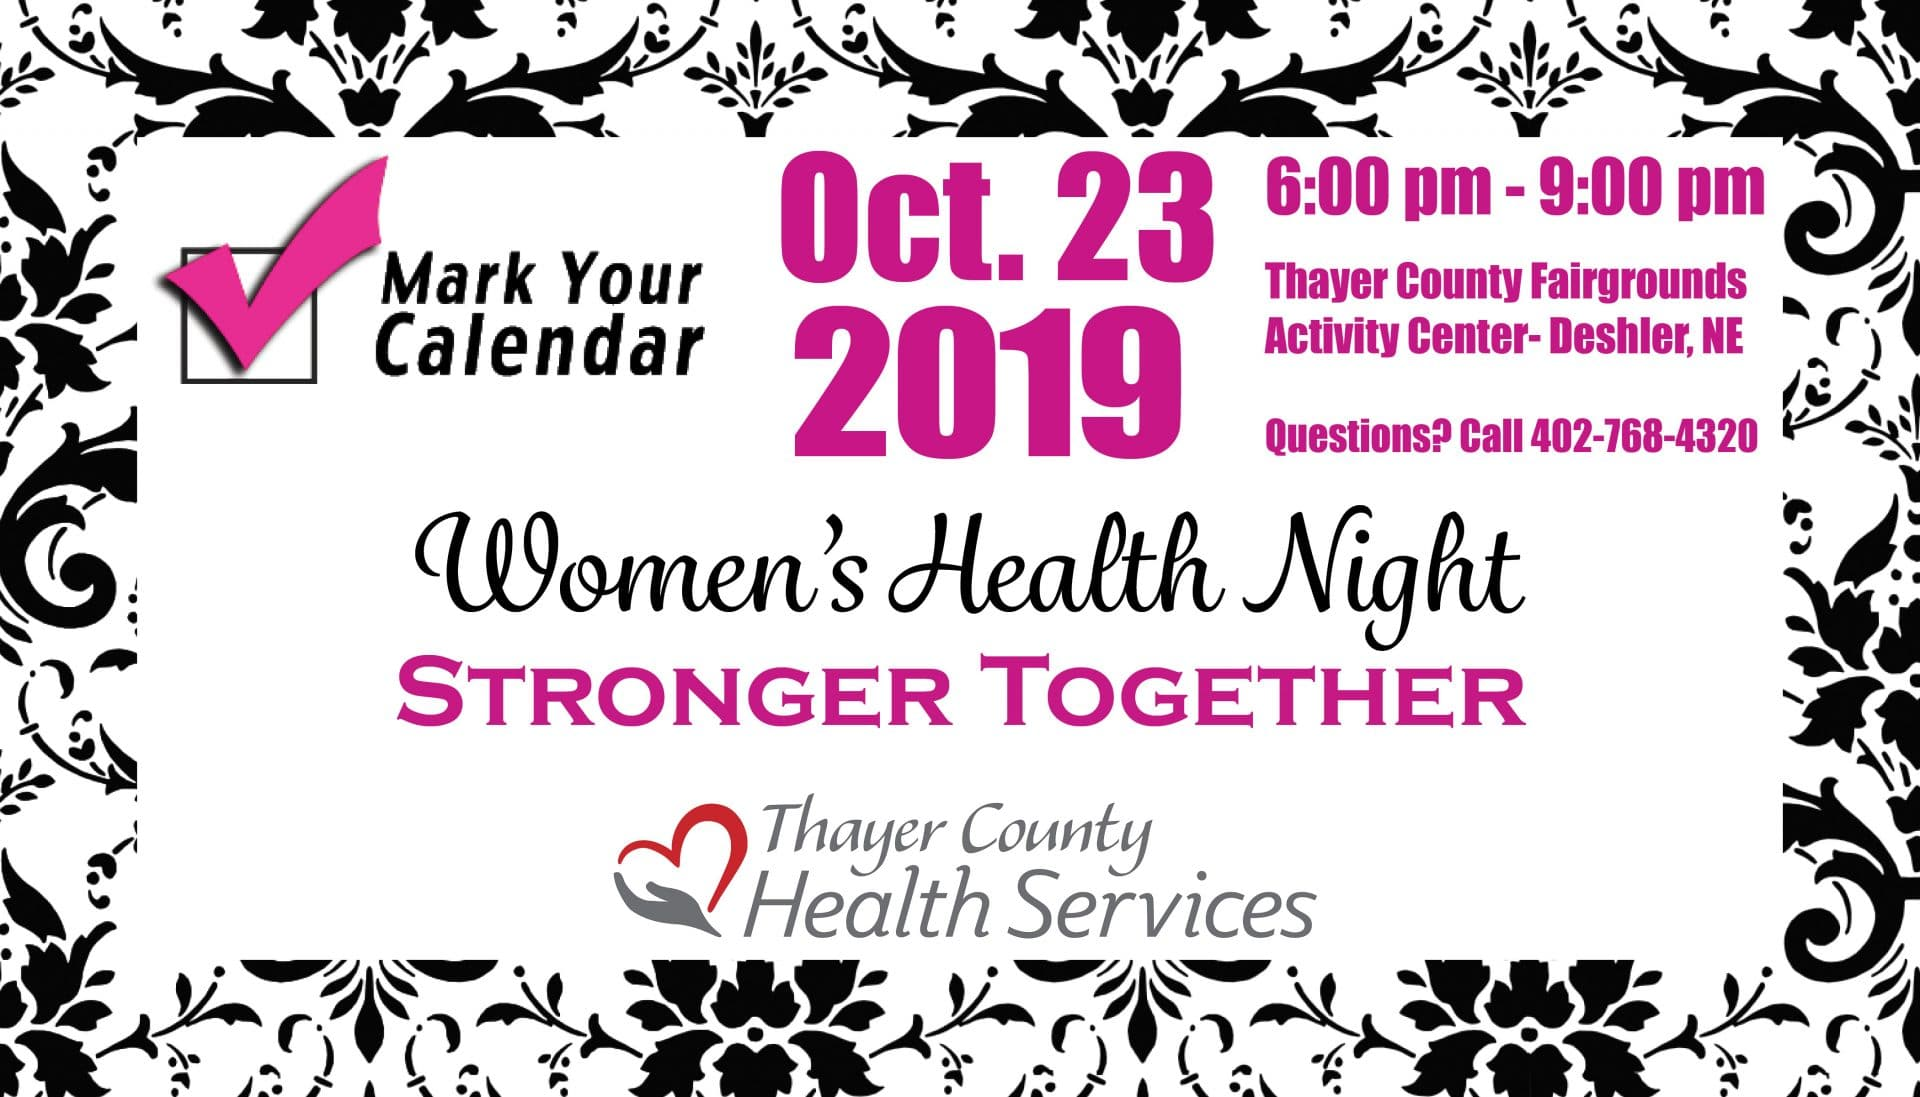 Join us for our annual Women's Health Night